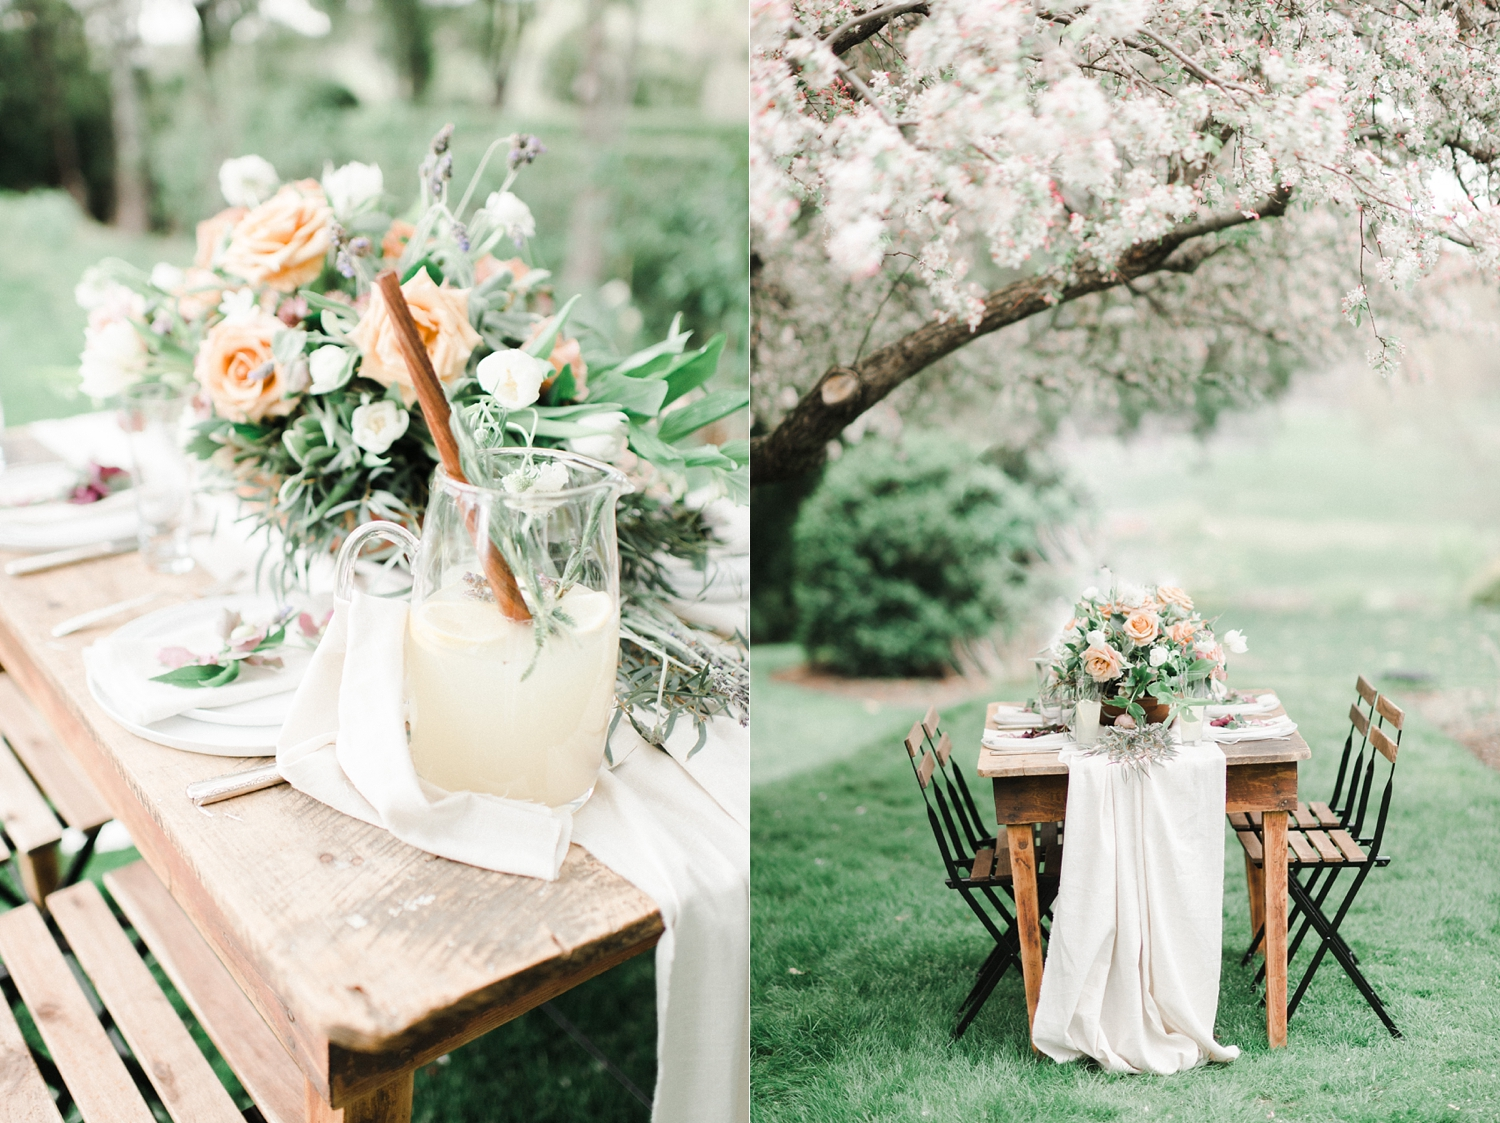 cottage_hill_herb_inspired_wedding_Oatlands_VA_wedding_Photographer_0041.jpg